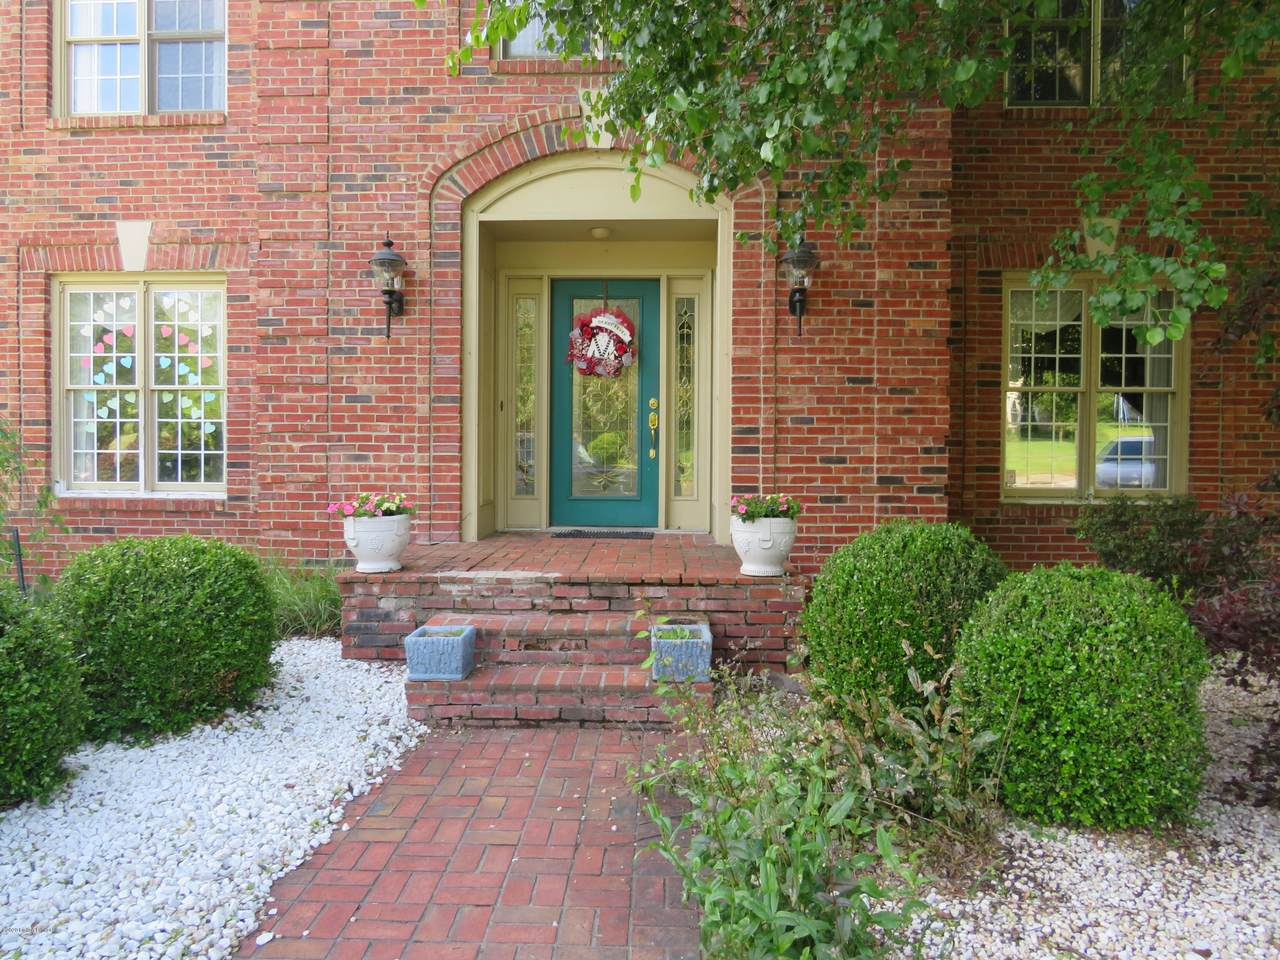 9506 Holiday Dr - Photo 1